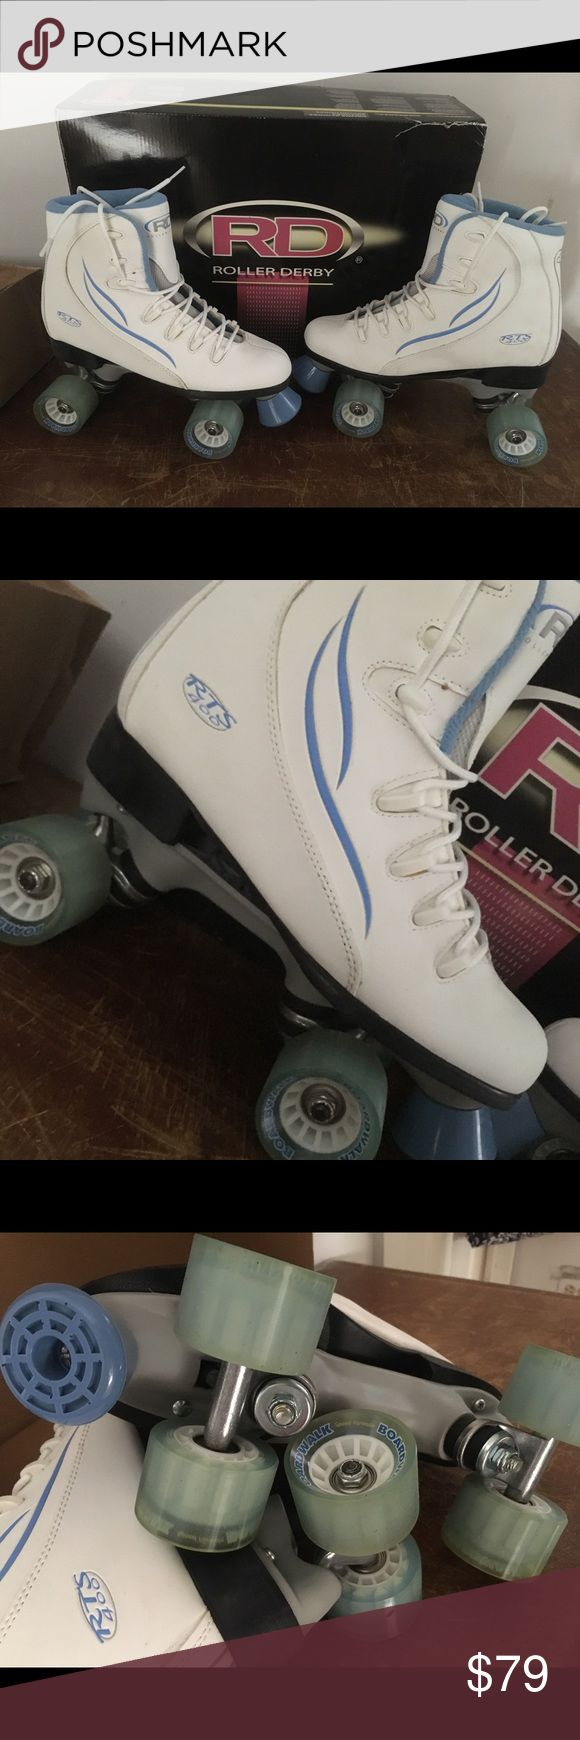 New Roller Skates RTS size 9 New in box Roller Skates. Shoes